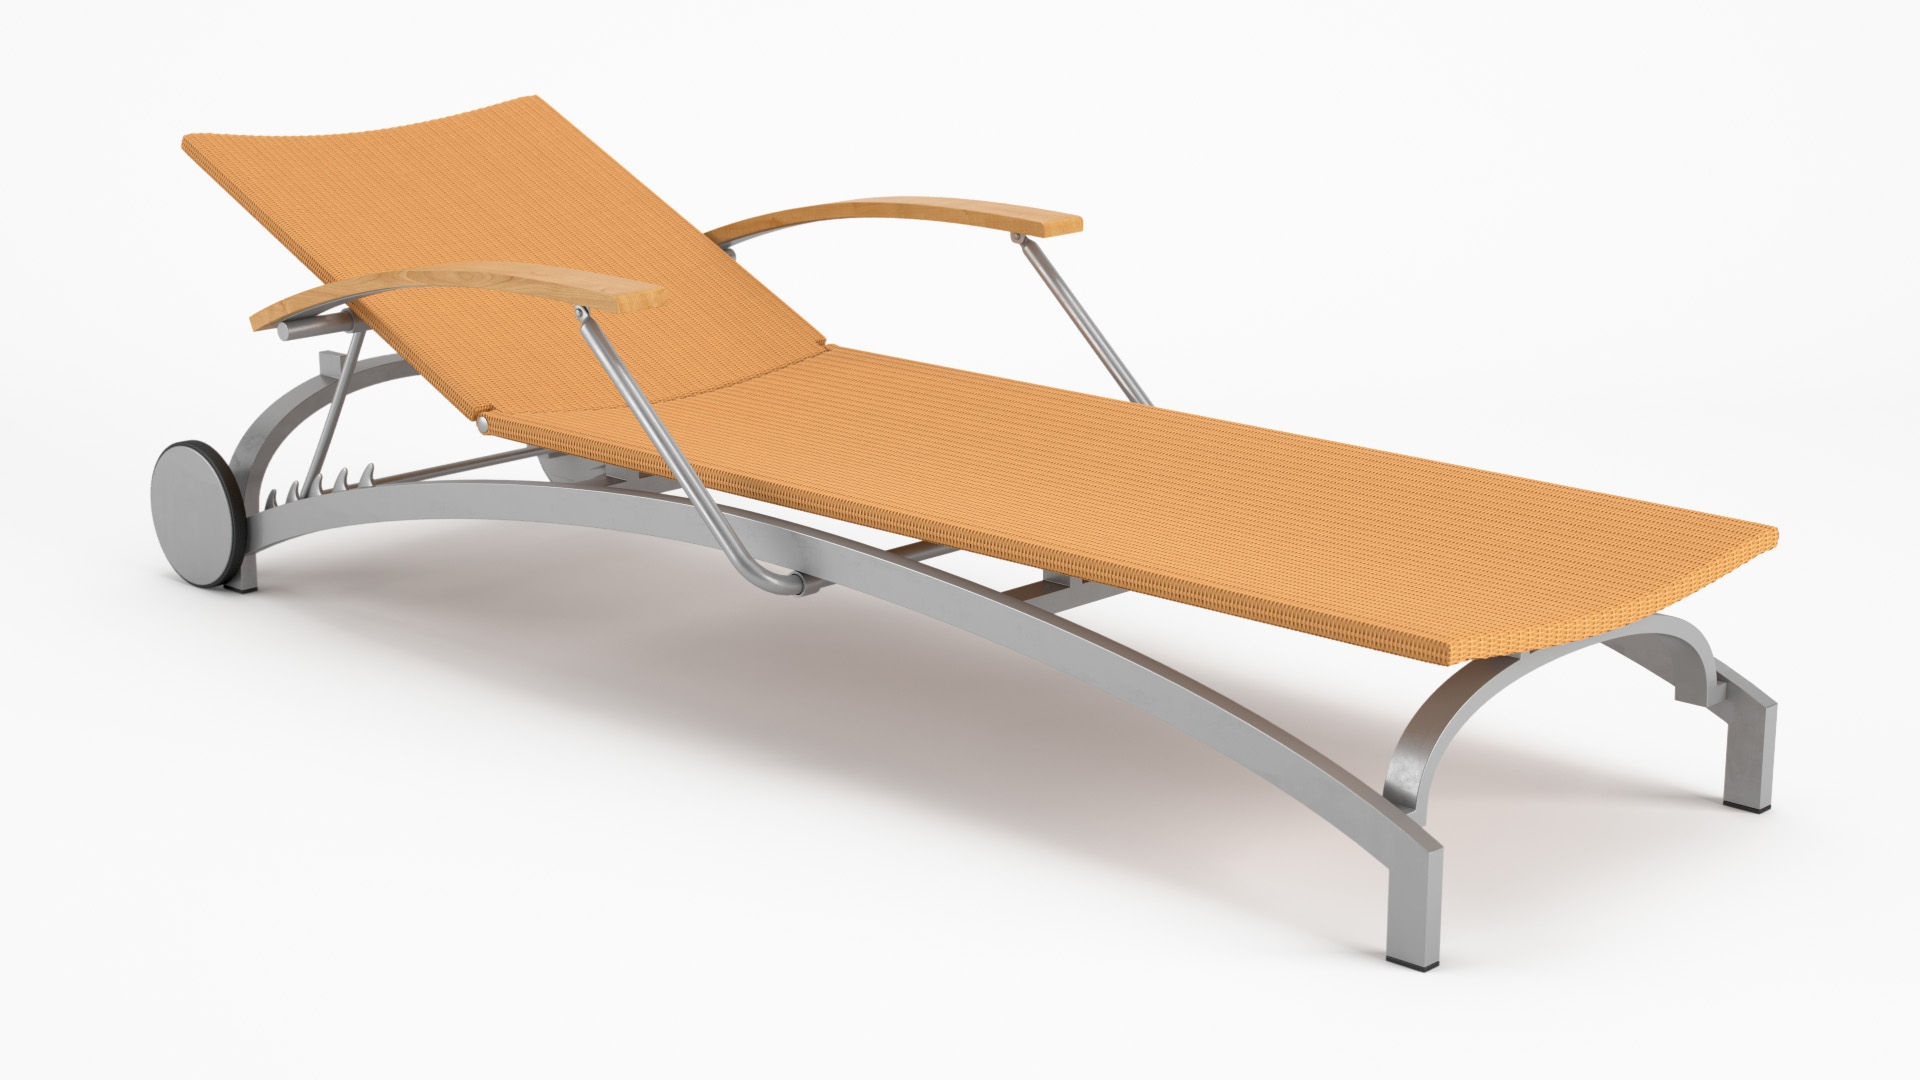 Breeze_Lounger_WhiteSet_01_0000